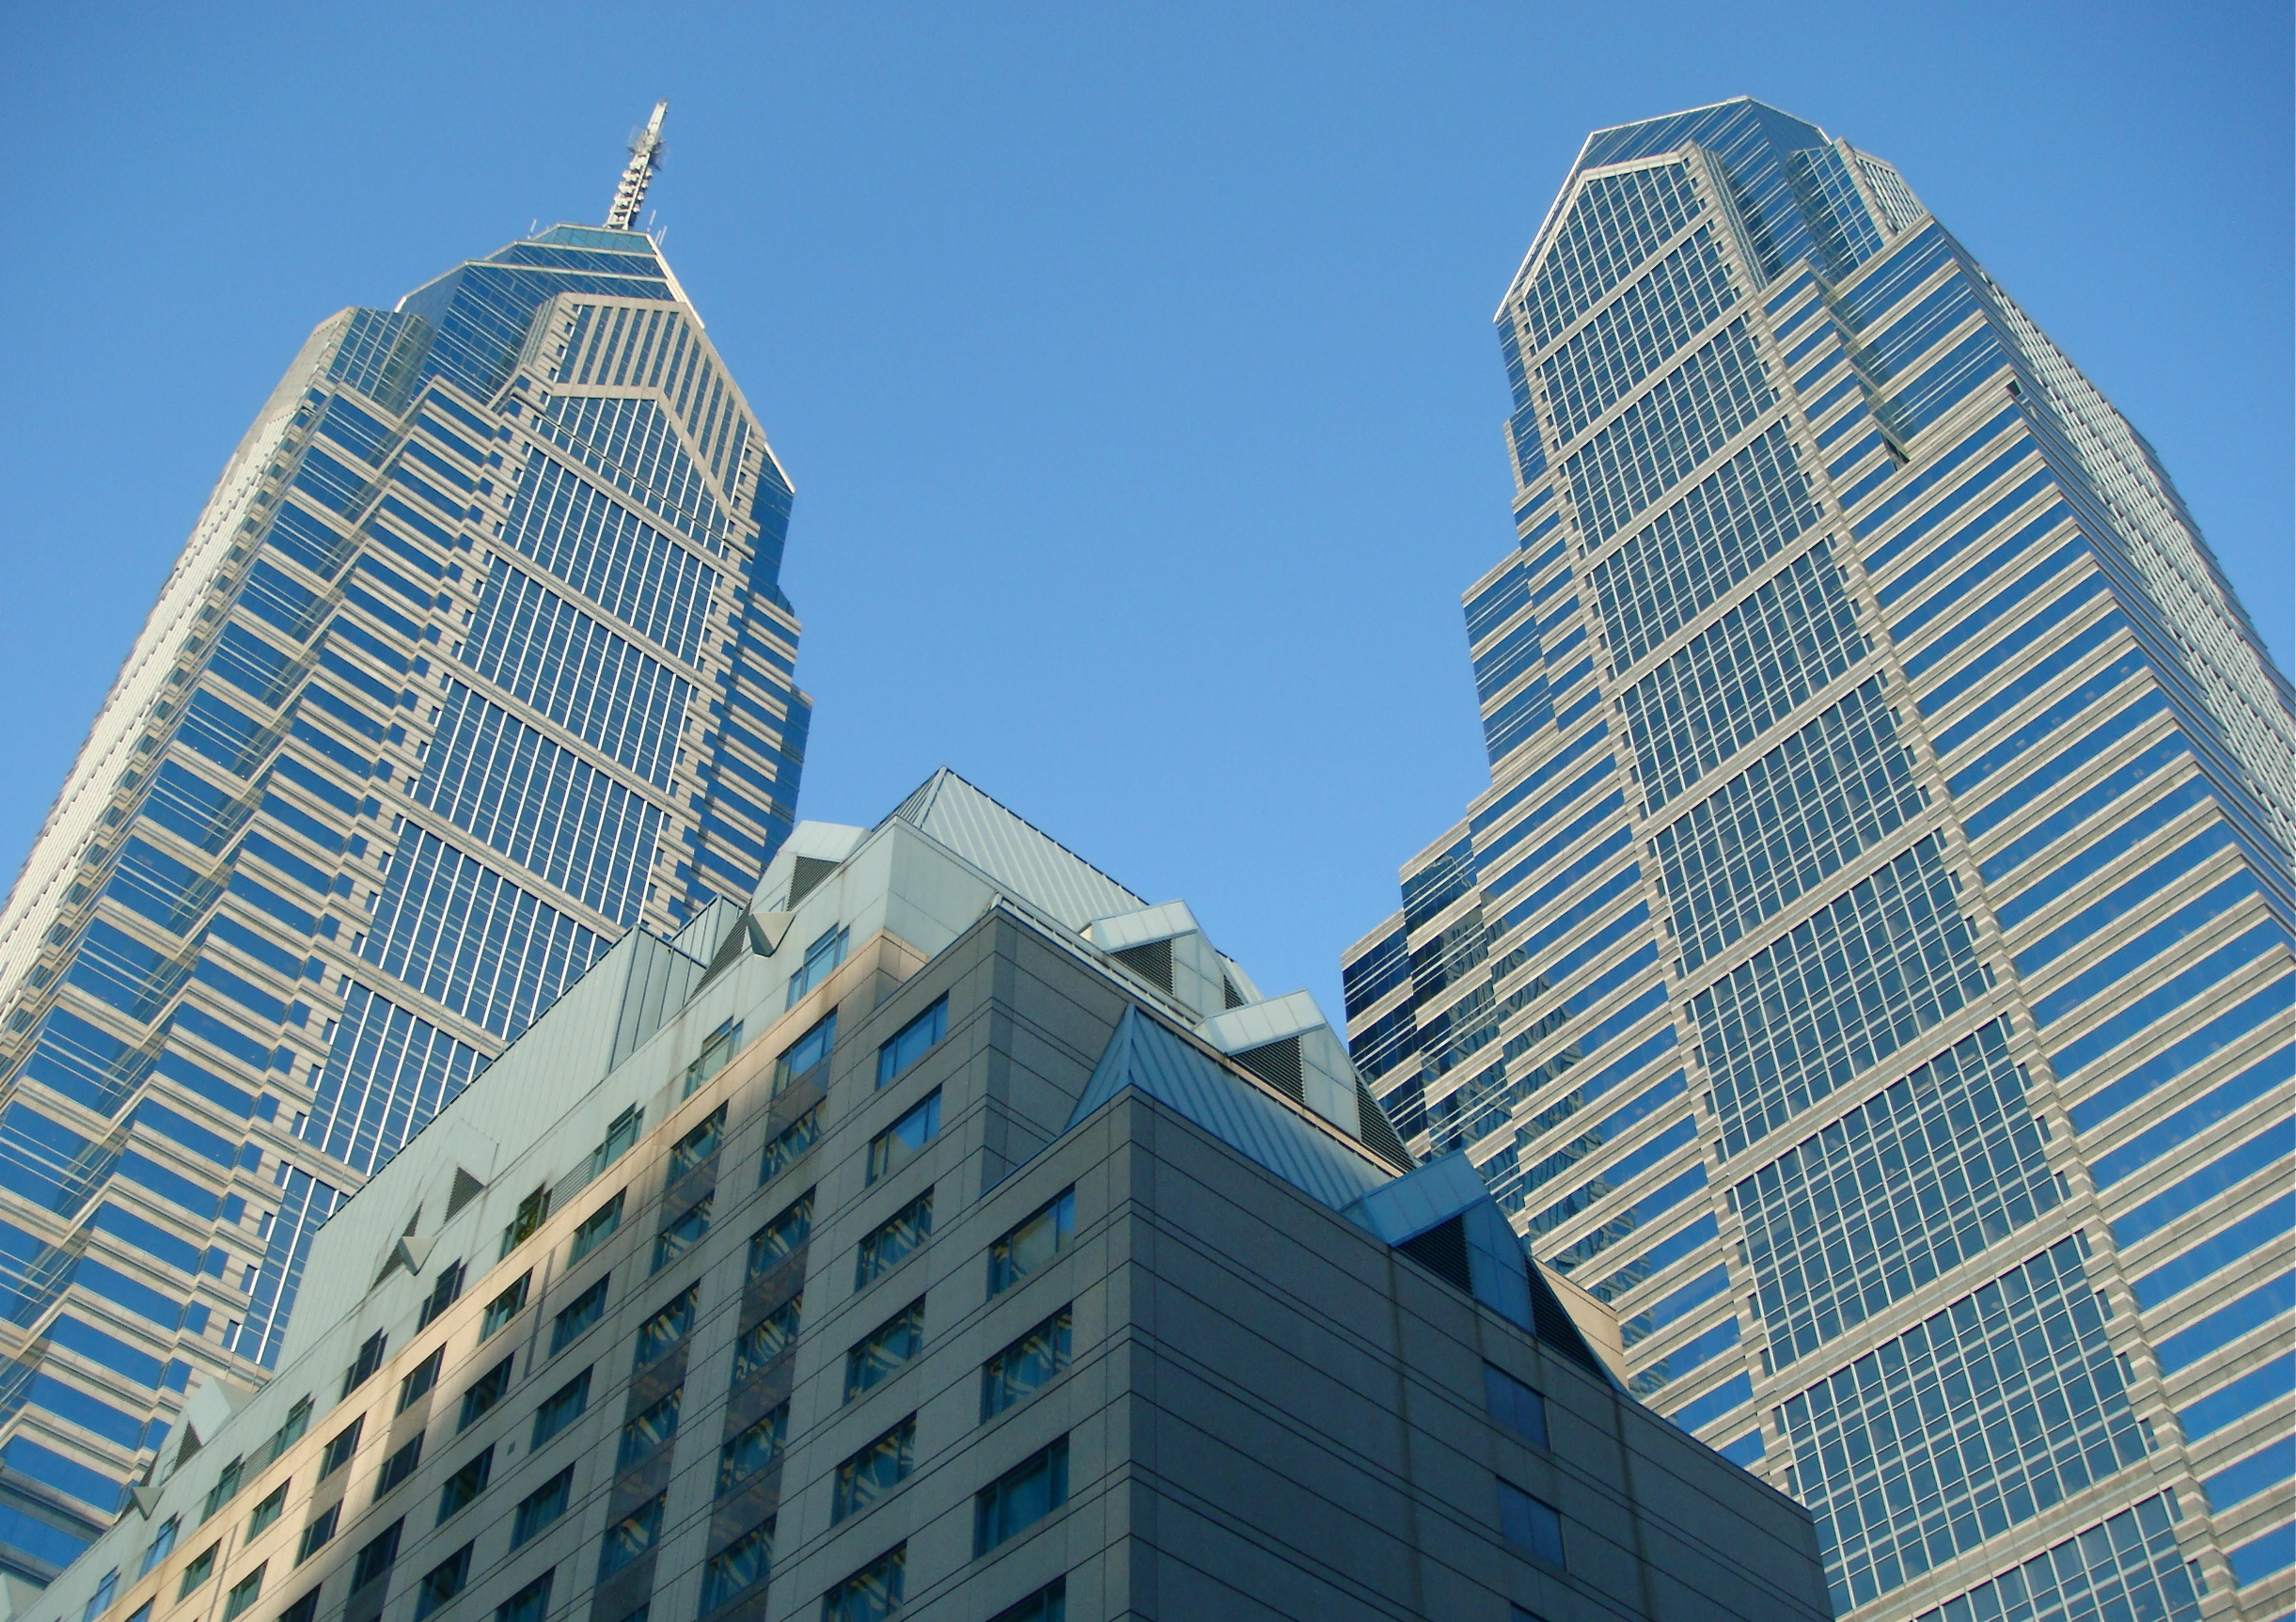 One and Two Liberty Place skyscrapers in Philadelphia